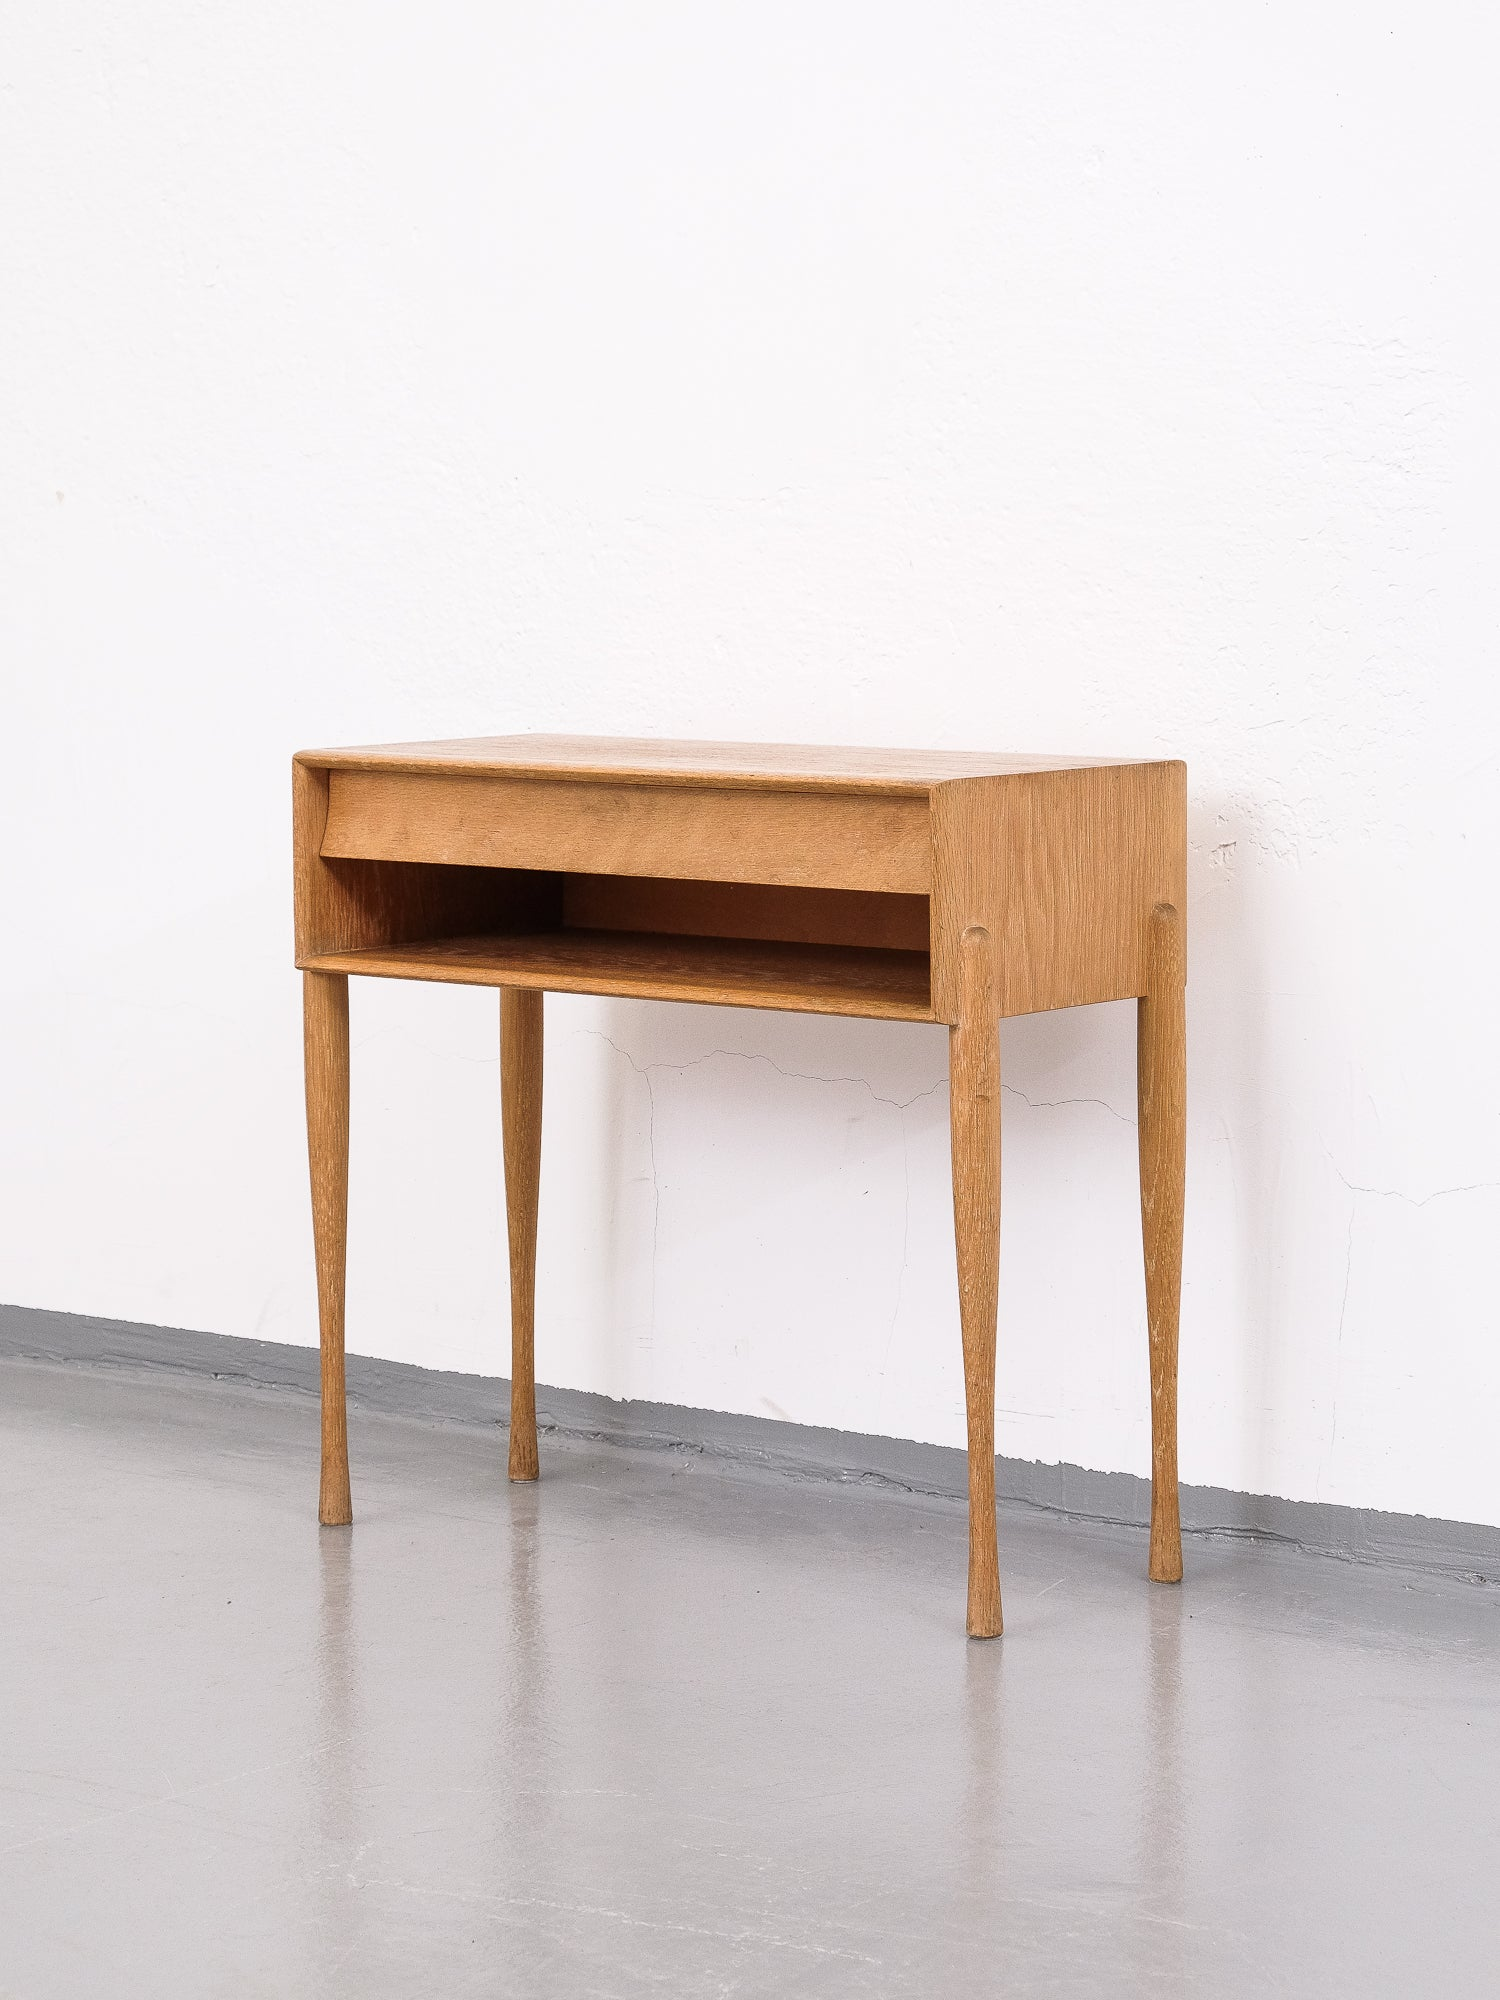 Single Drawer Chest/Table in Oak, G & T Hovmantorp, Sweden 1960s